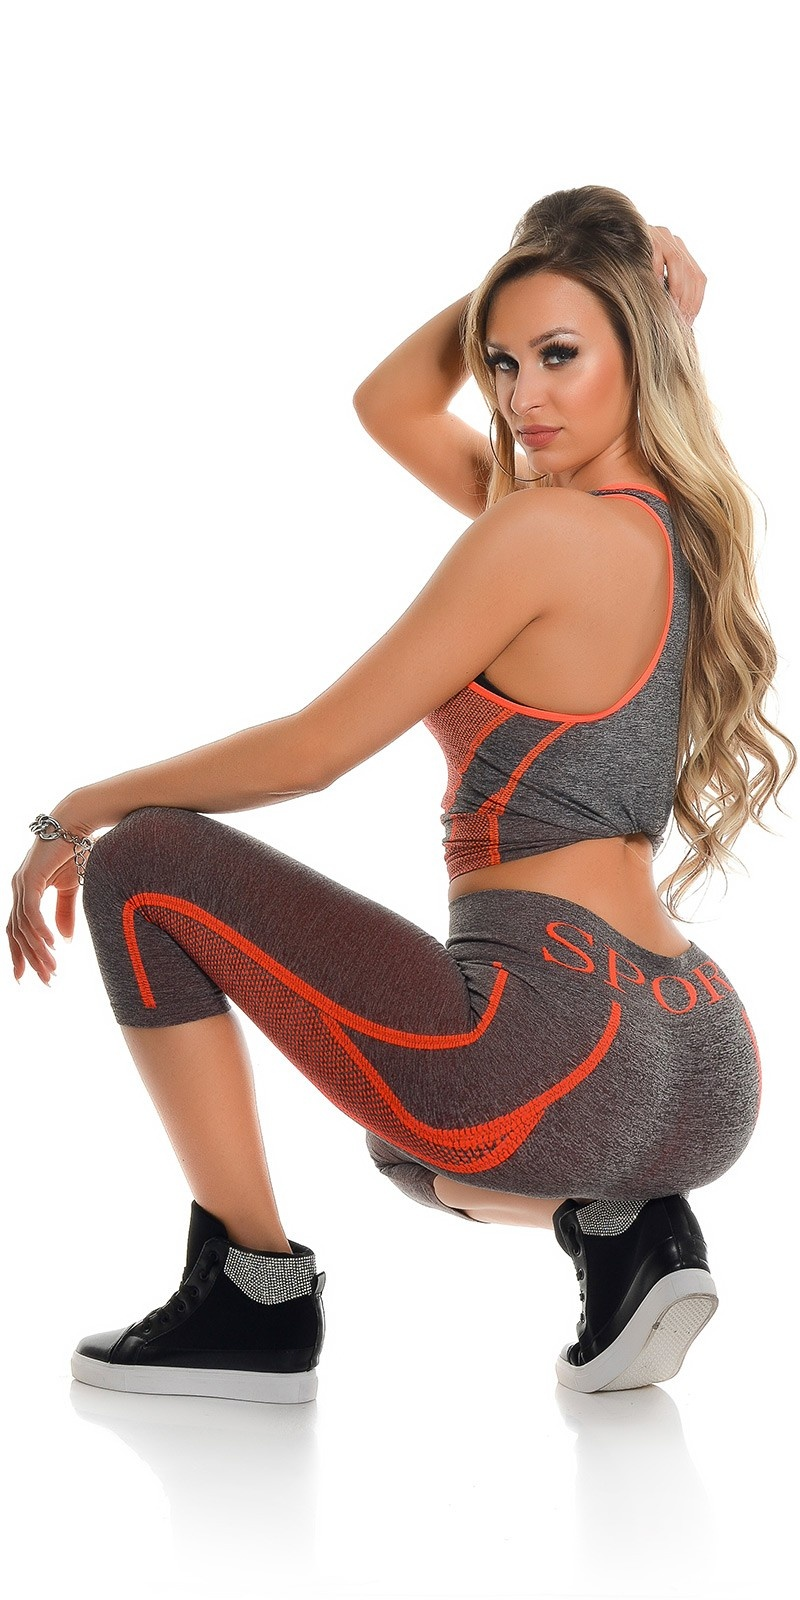 Trendy Workout Outfit Tanktop & Caprileggings Orange